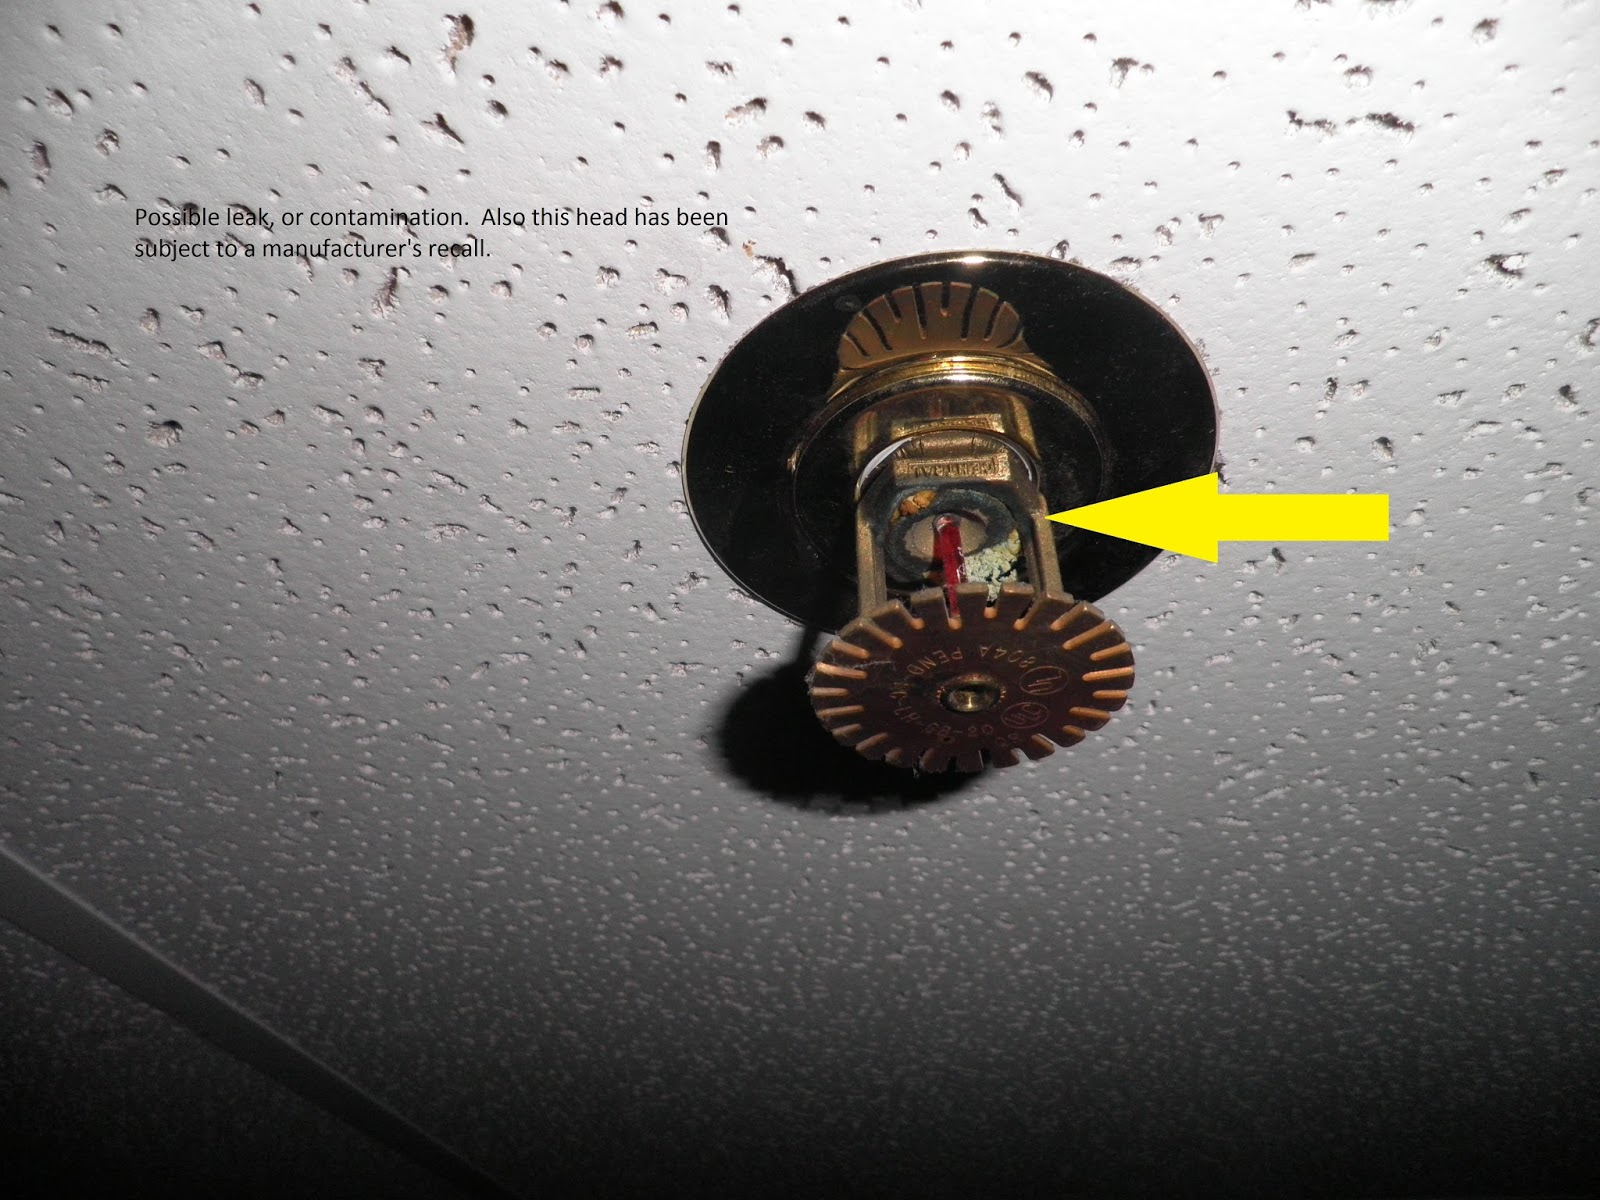 Fire Protection Deficiencies: Corroded Fire Sprinkler Heads